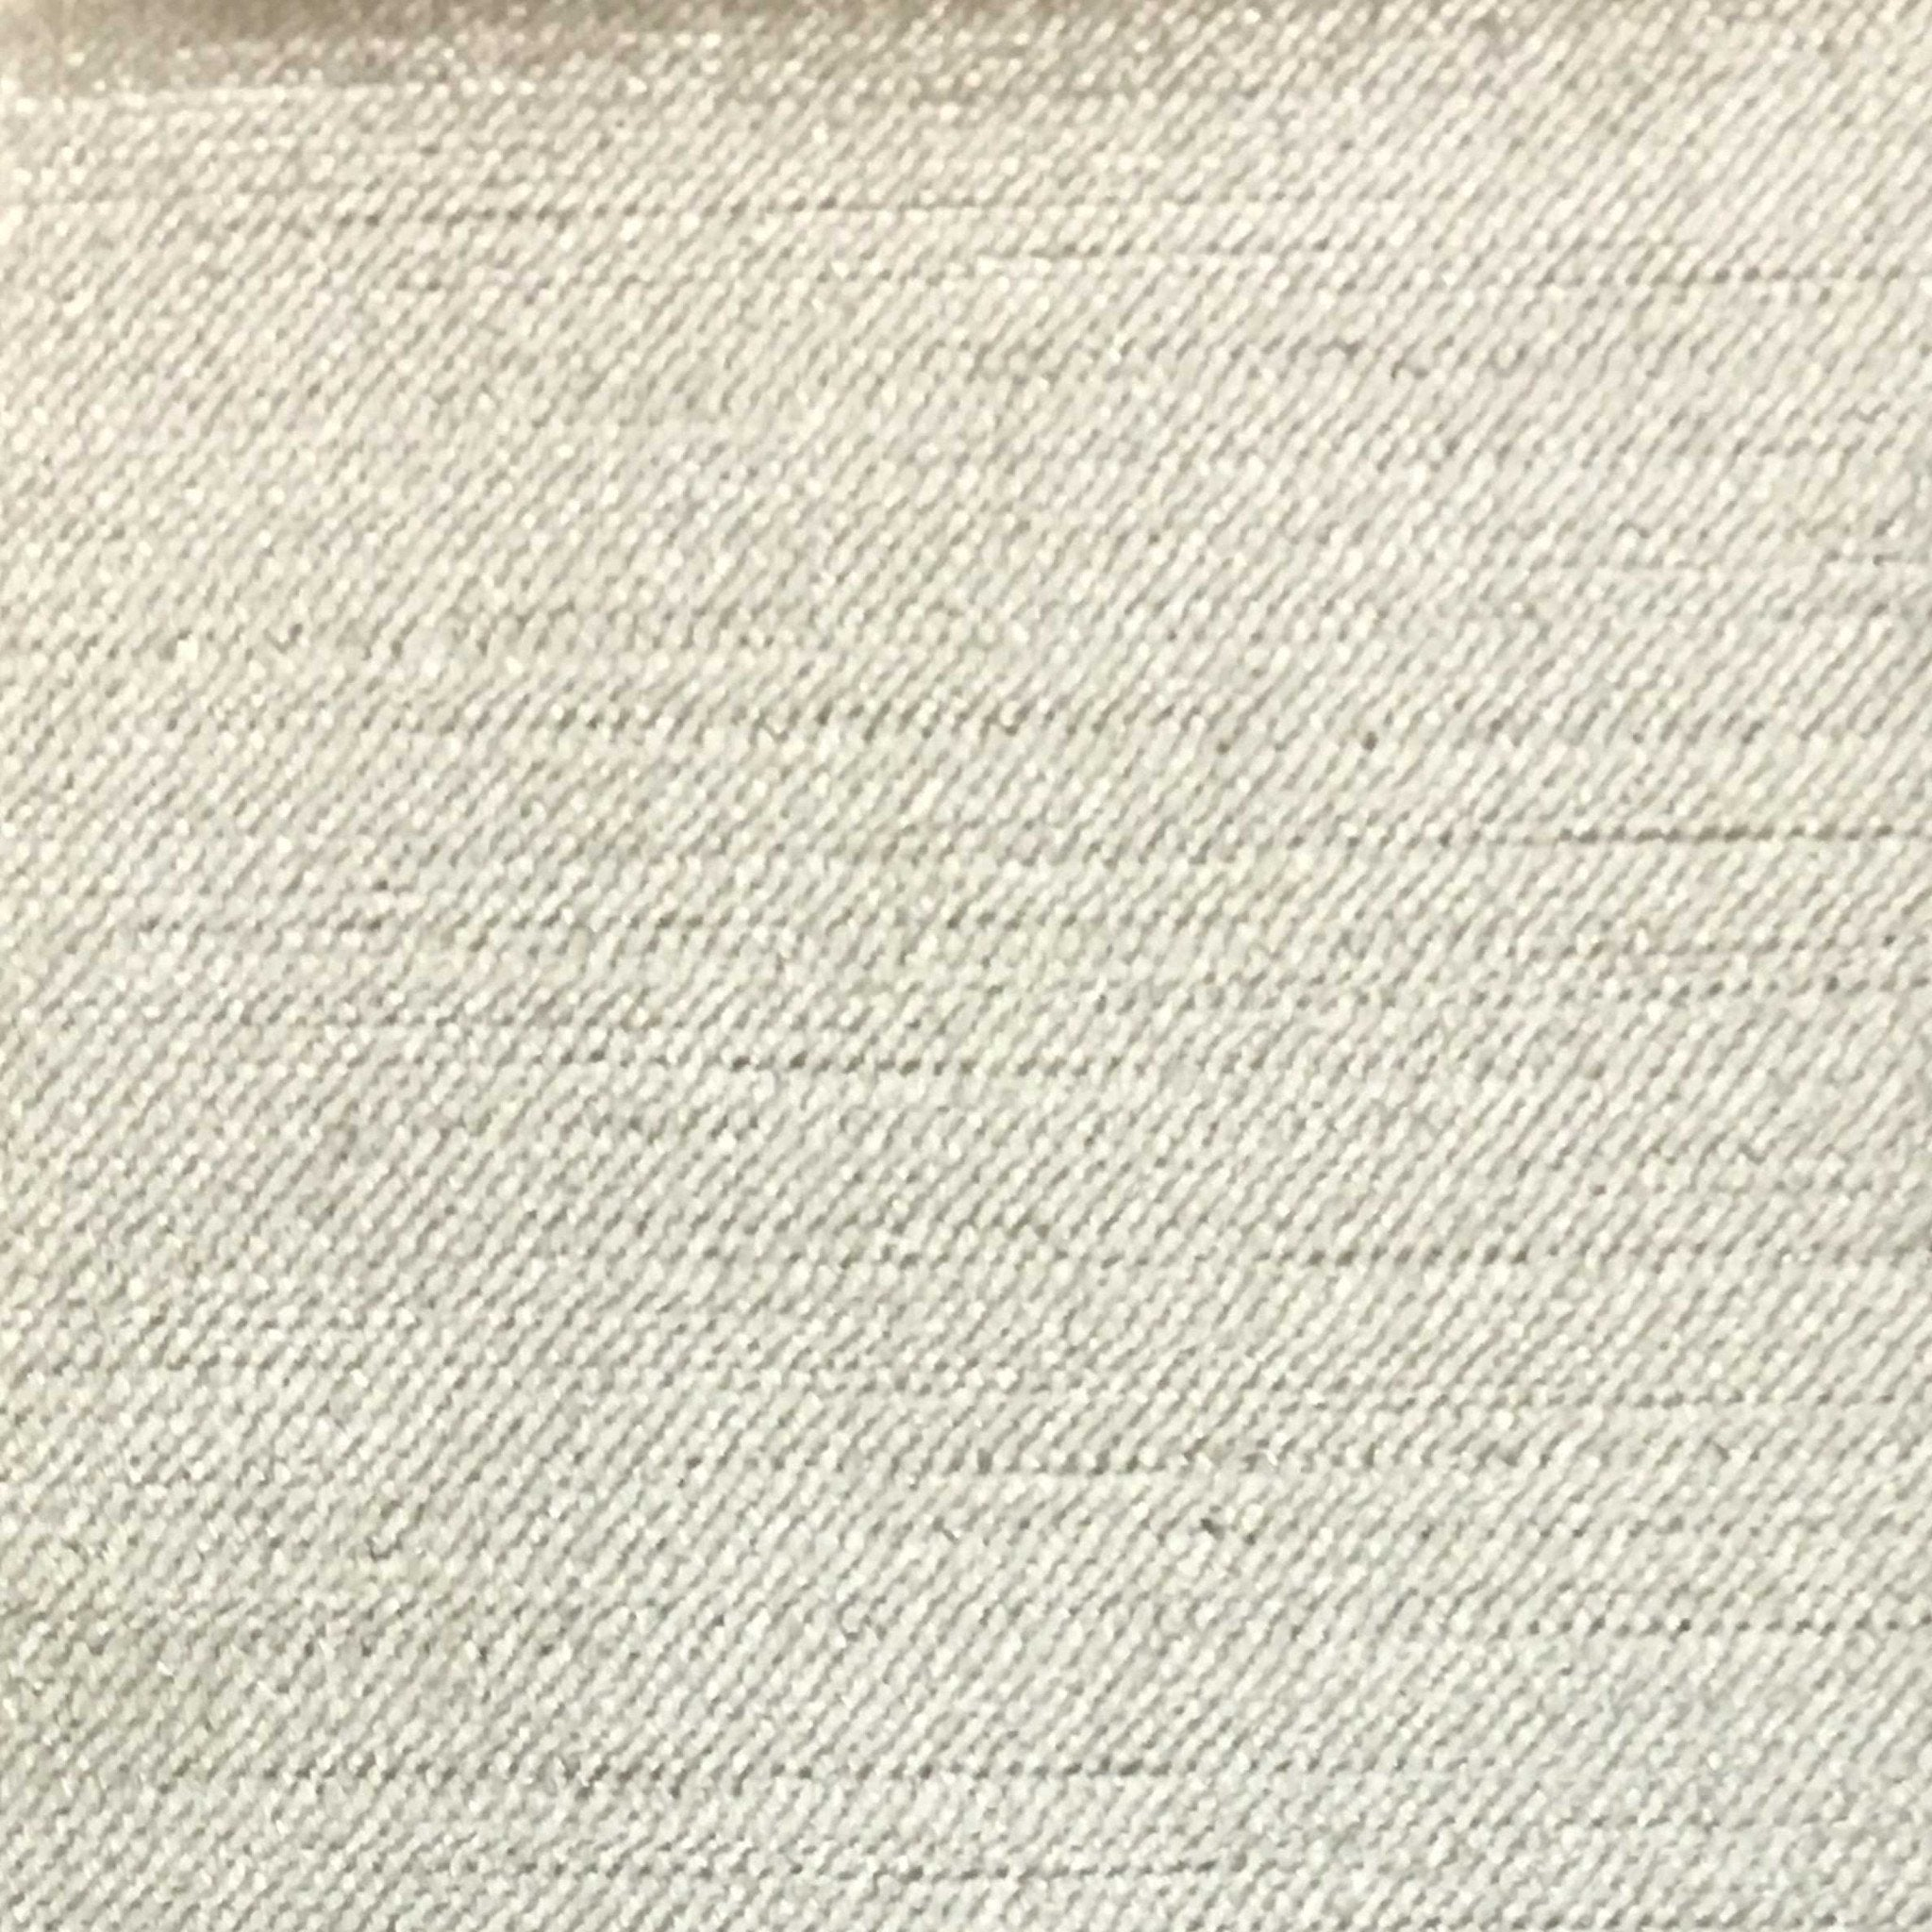 Queen Lustrous Metallic Cotton Rayon Velvet Upholstery Fabric By